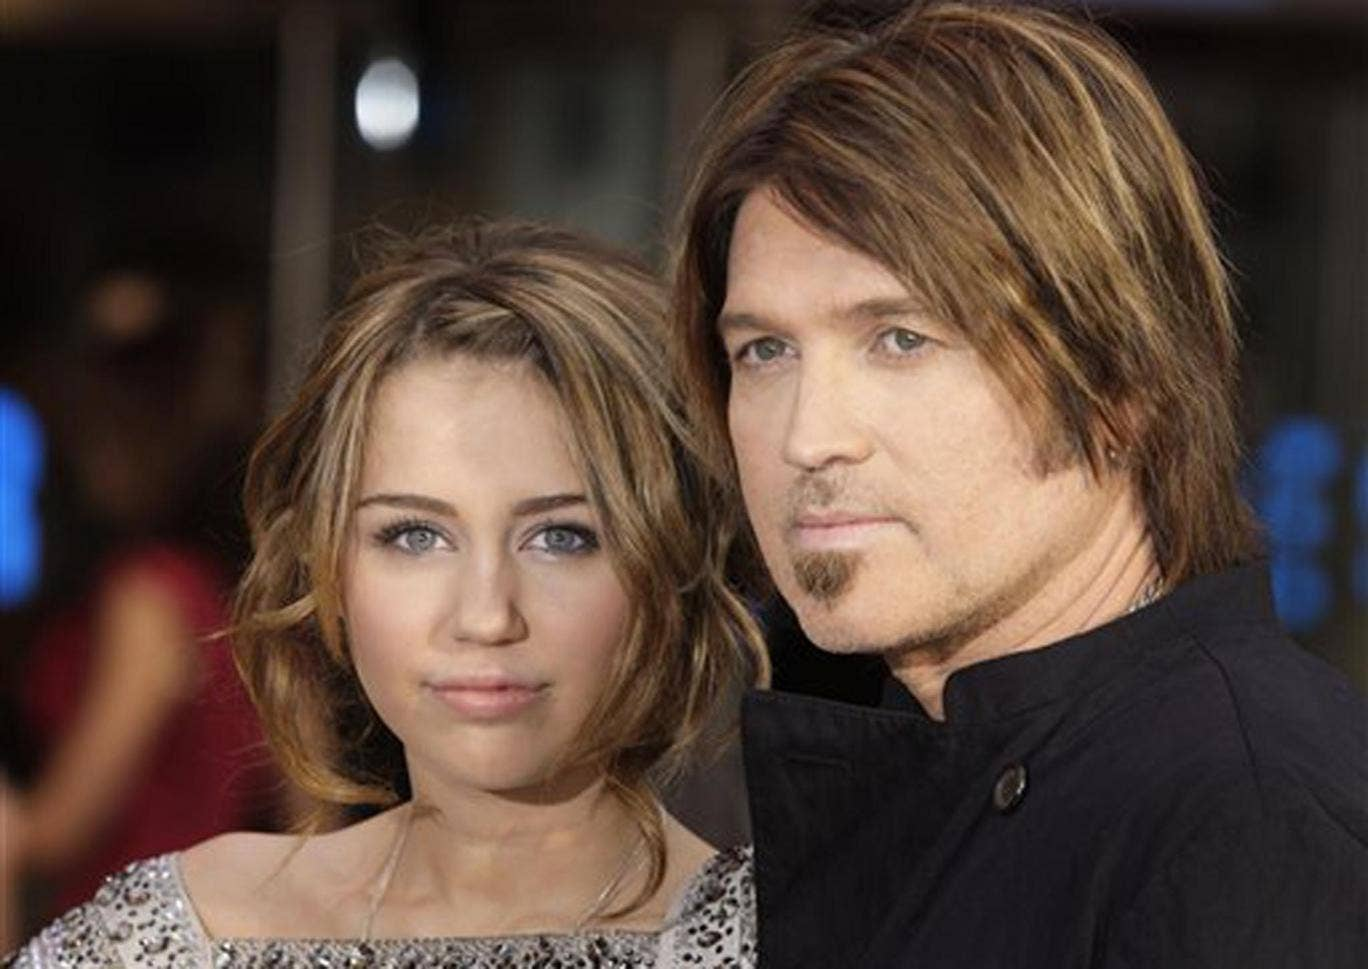 Miley Cyrus with her father, country musician Billy Ray Cyrus